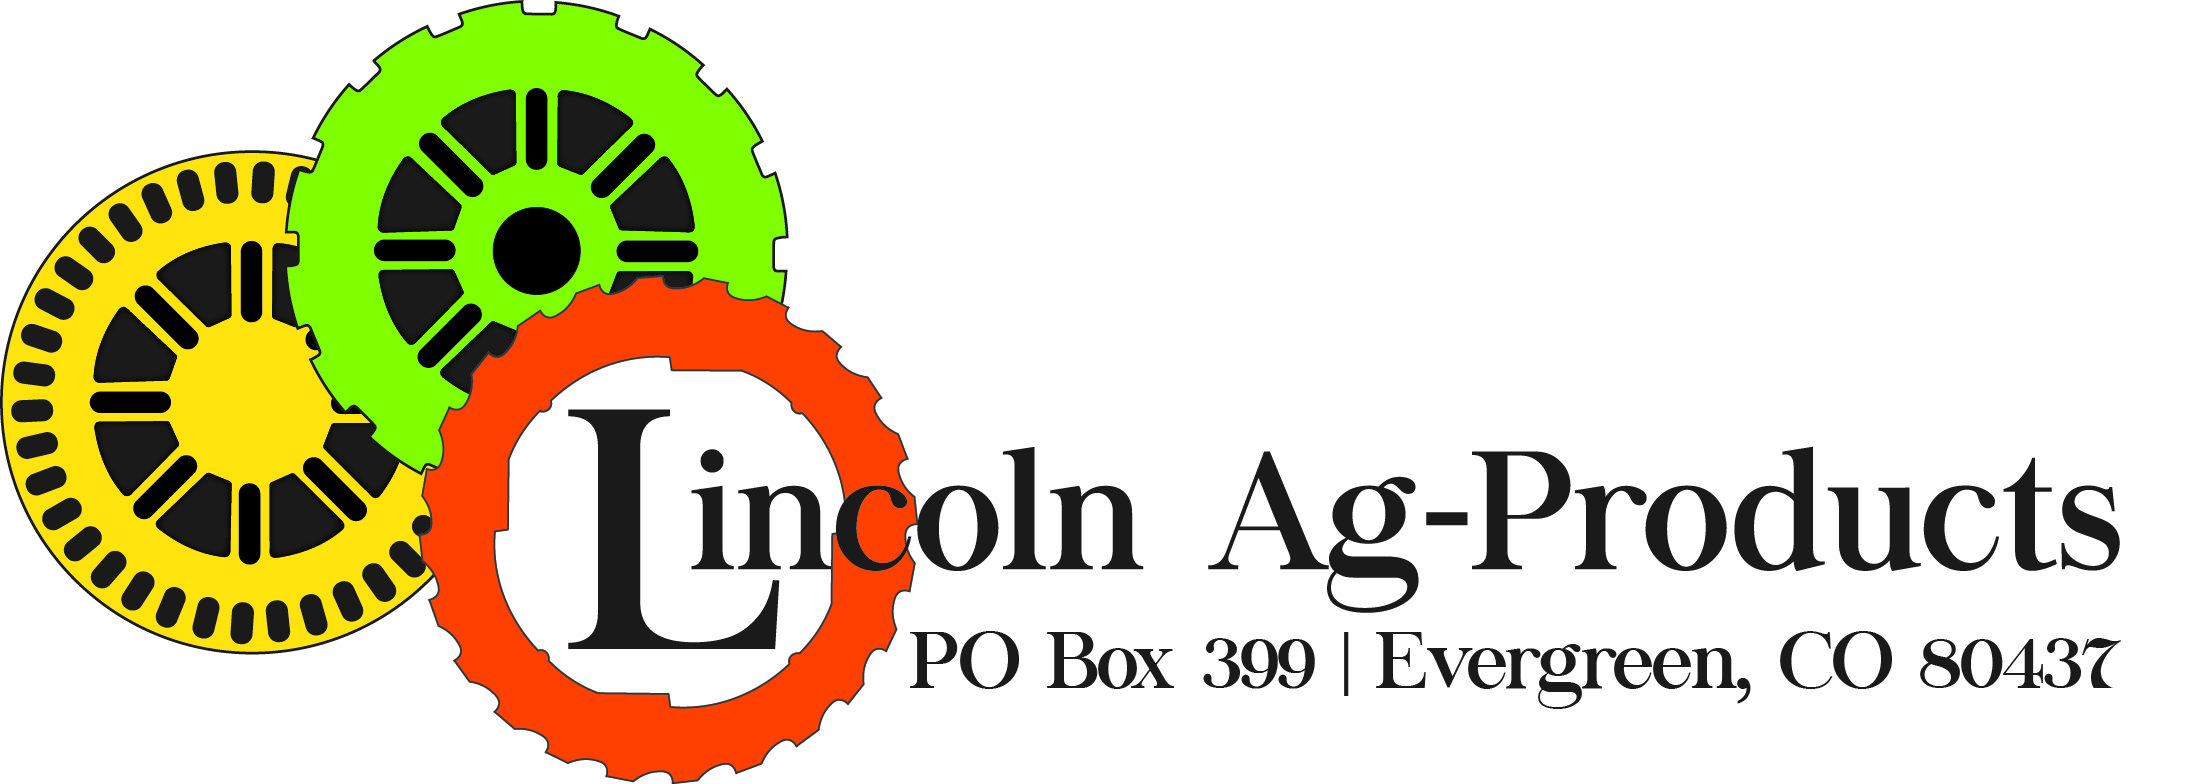 Lincoln Ag Products